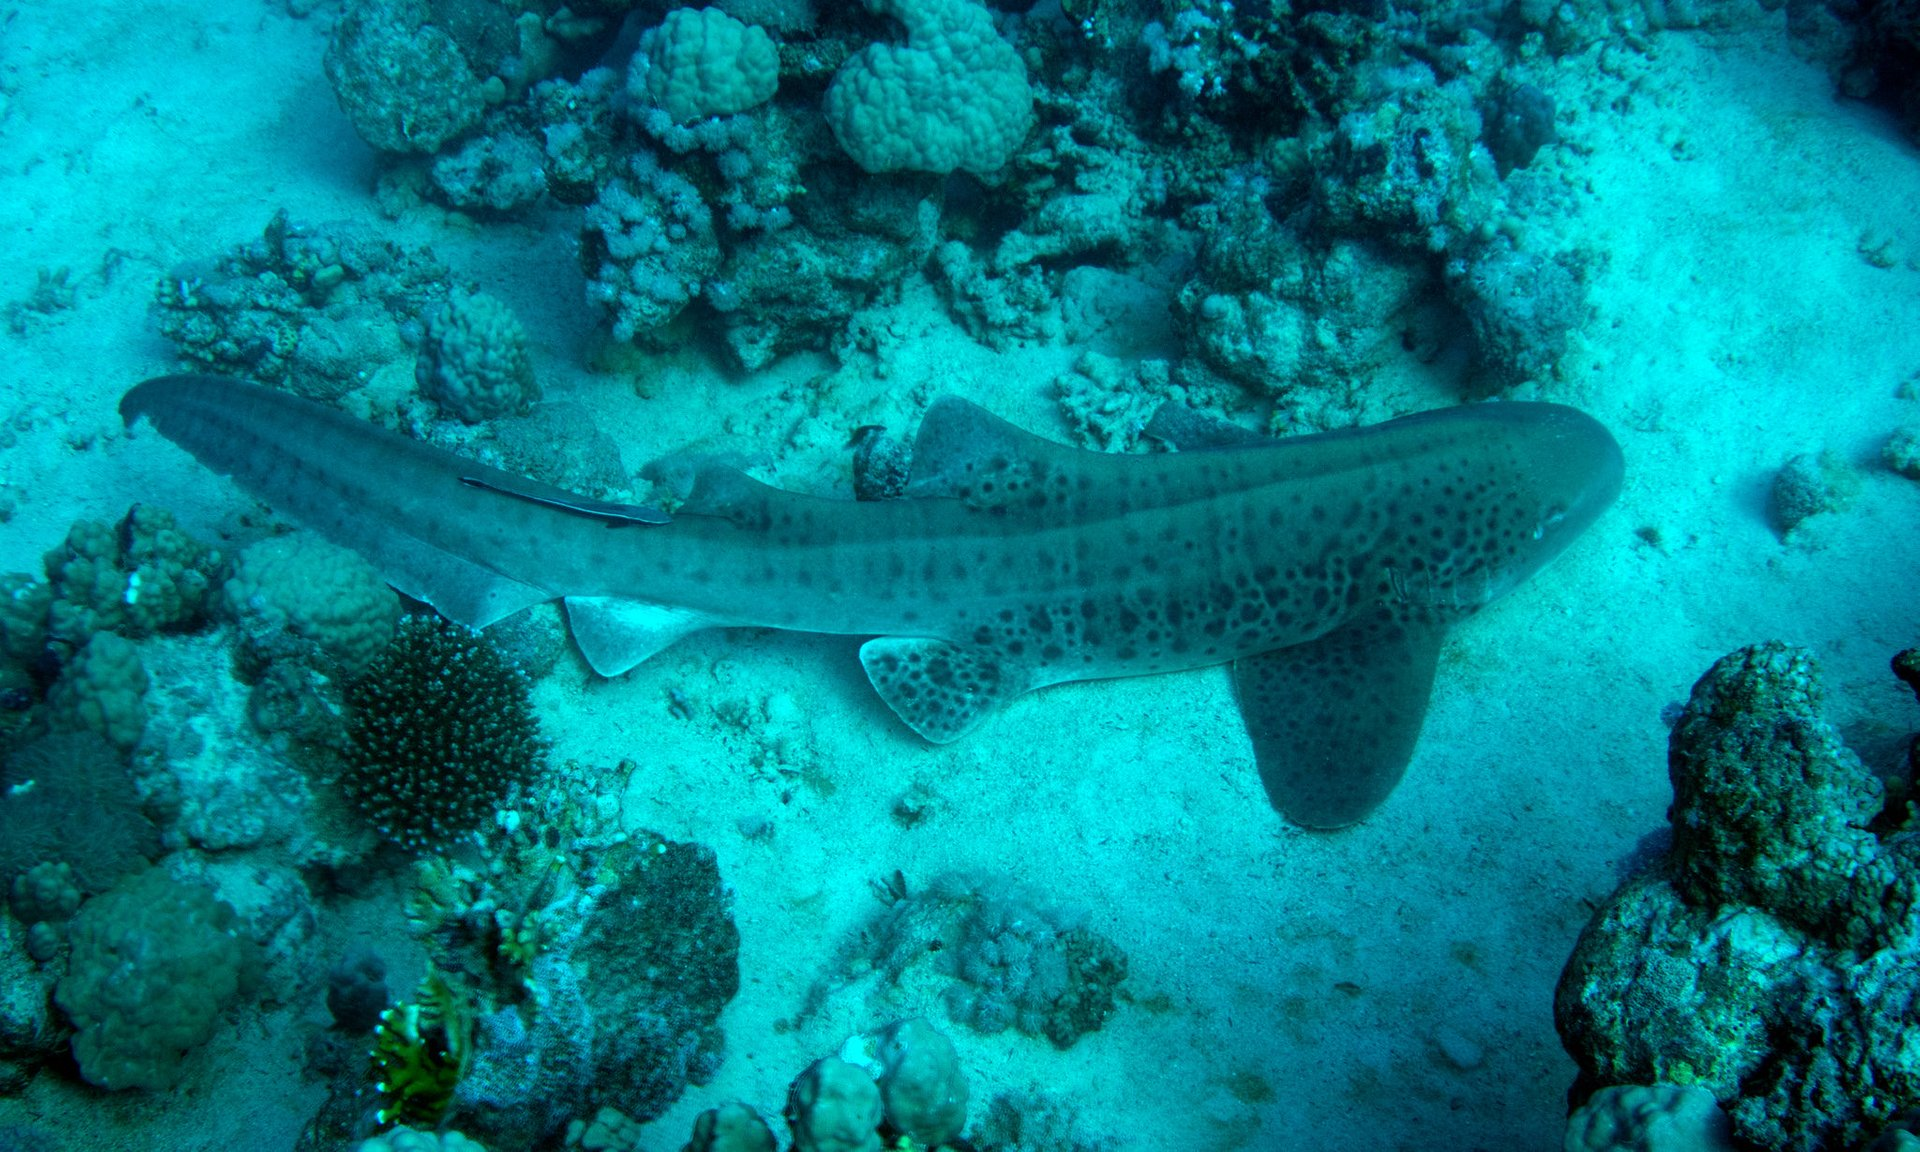 Leopard Shark off Tiran Island, Red Sea 2019